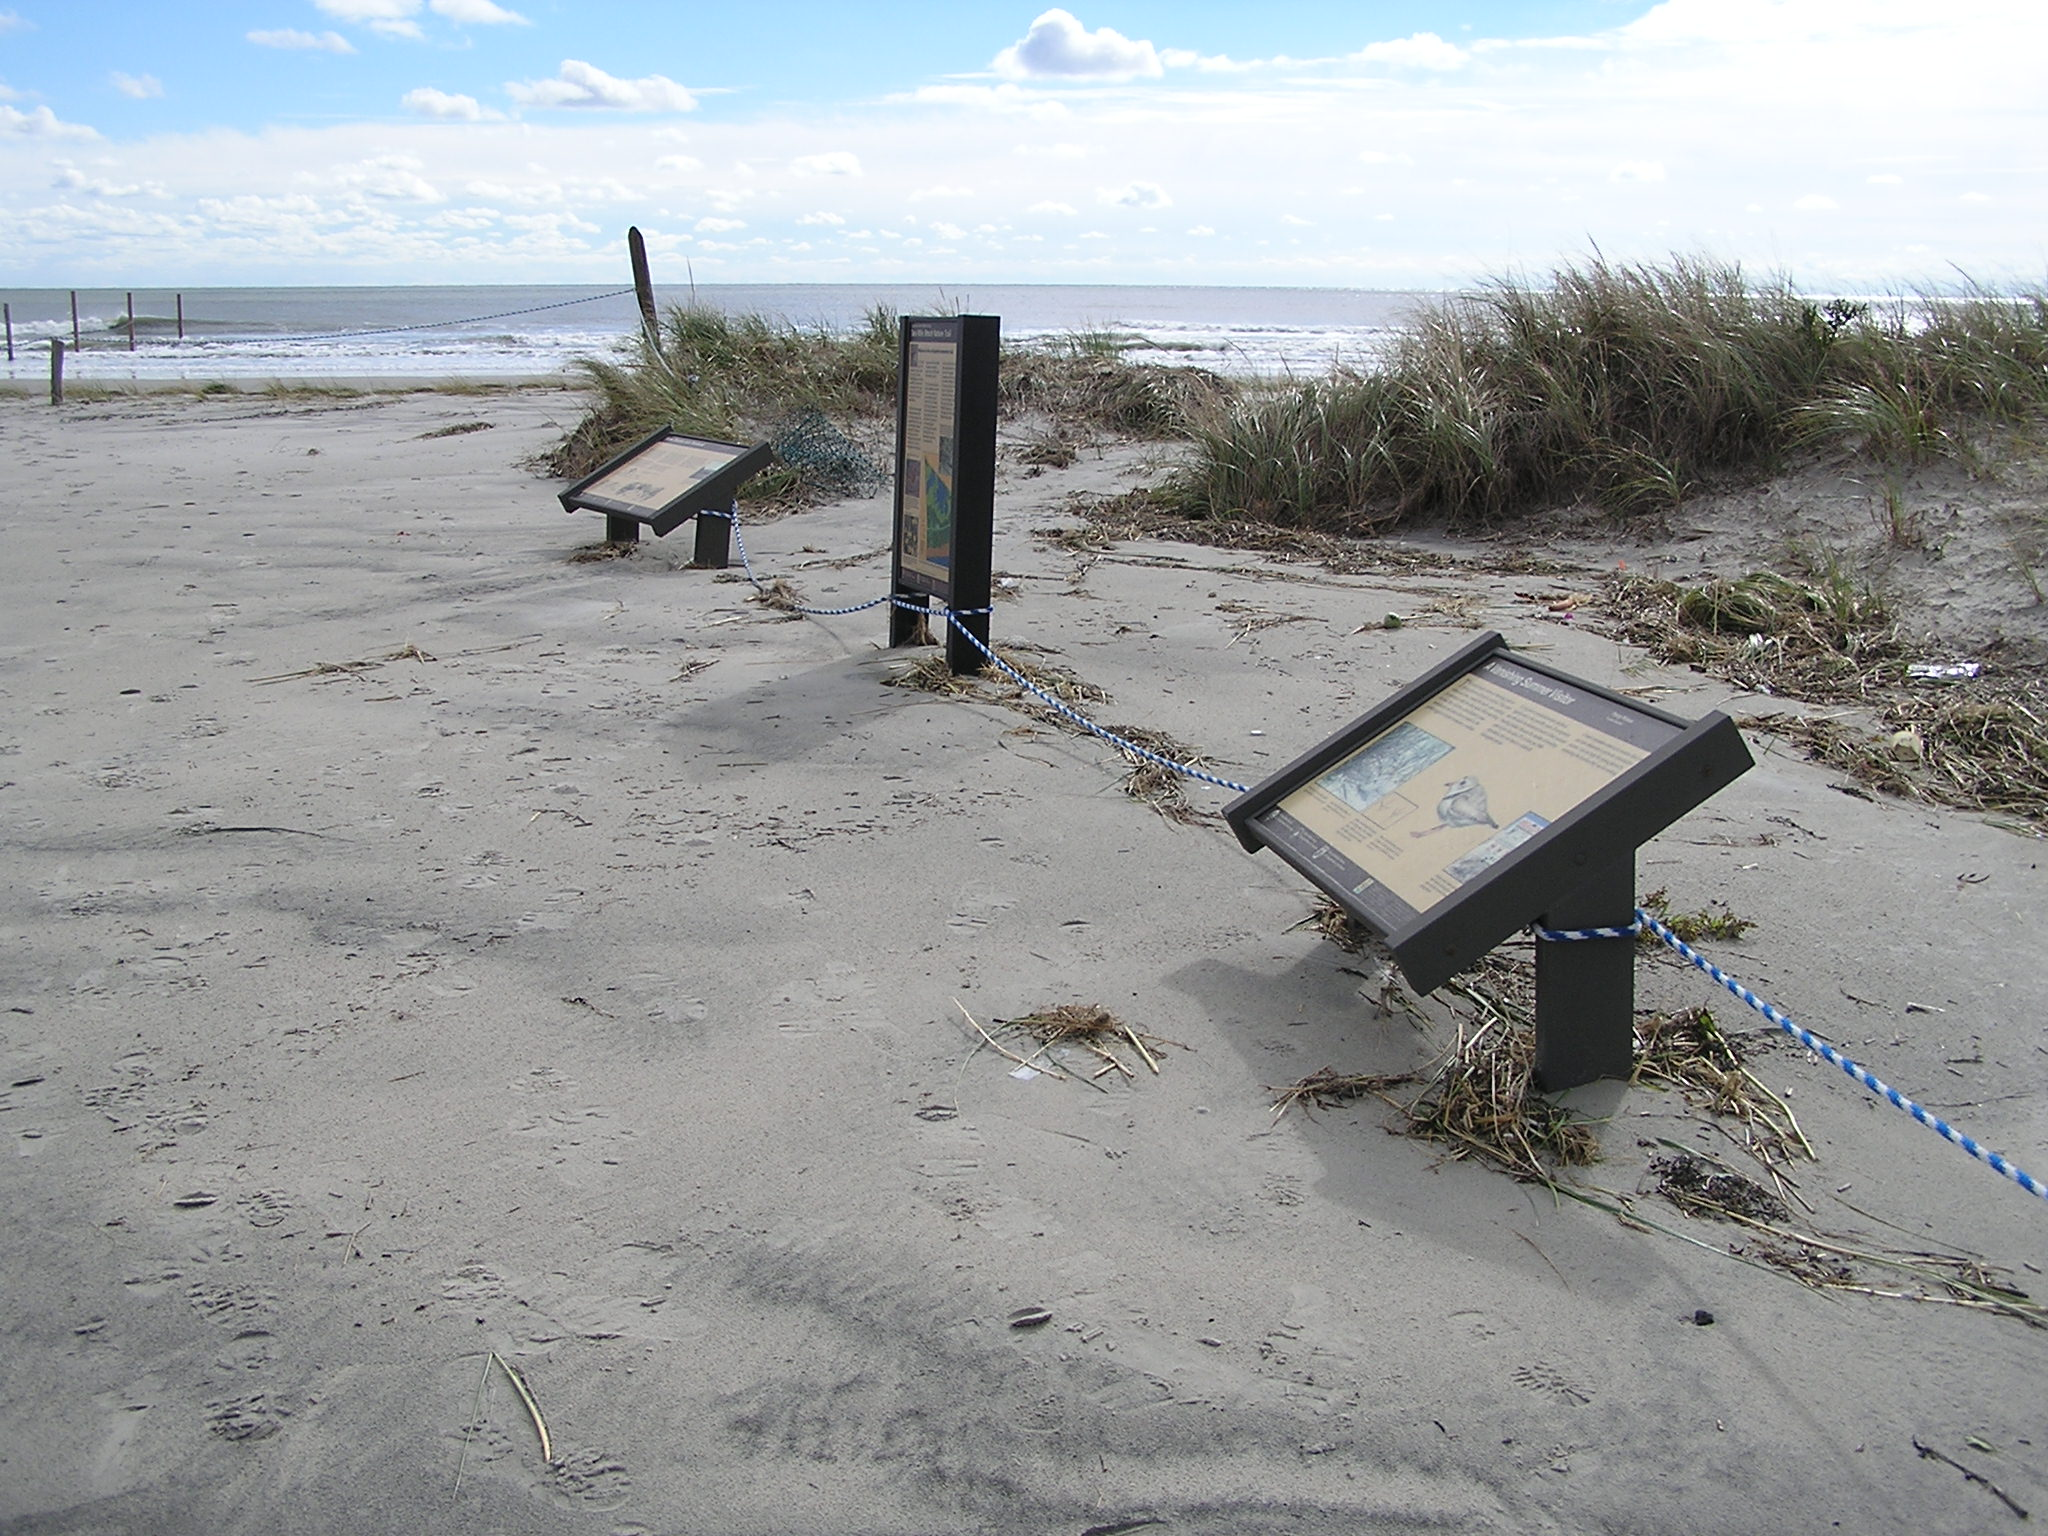 Hurricane Sandy damaged Cape May National Wildlife Refuge